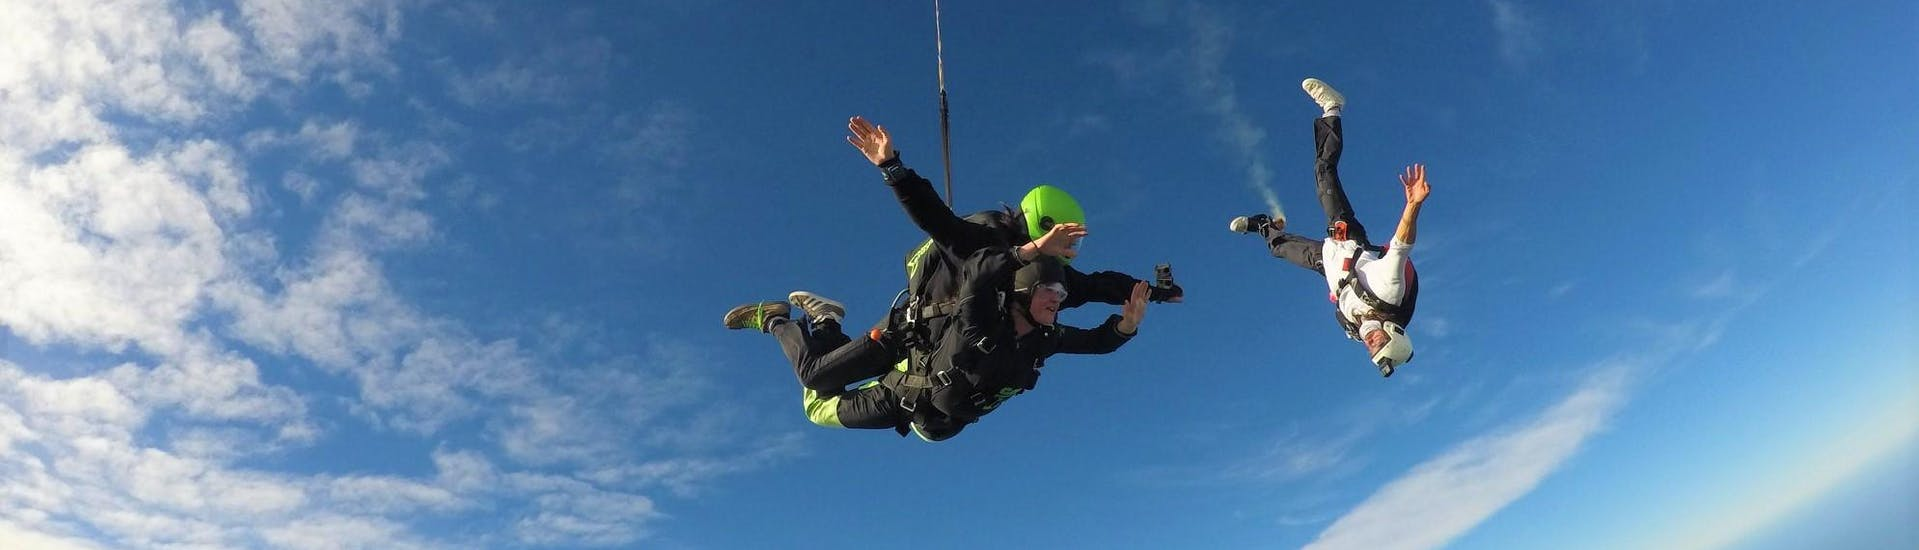 Tandem Skydive near Christchurch from 13,000ft